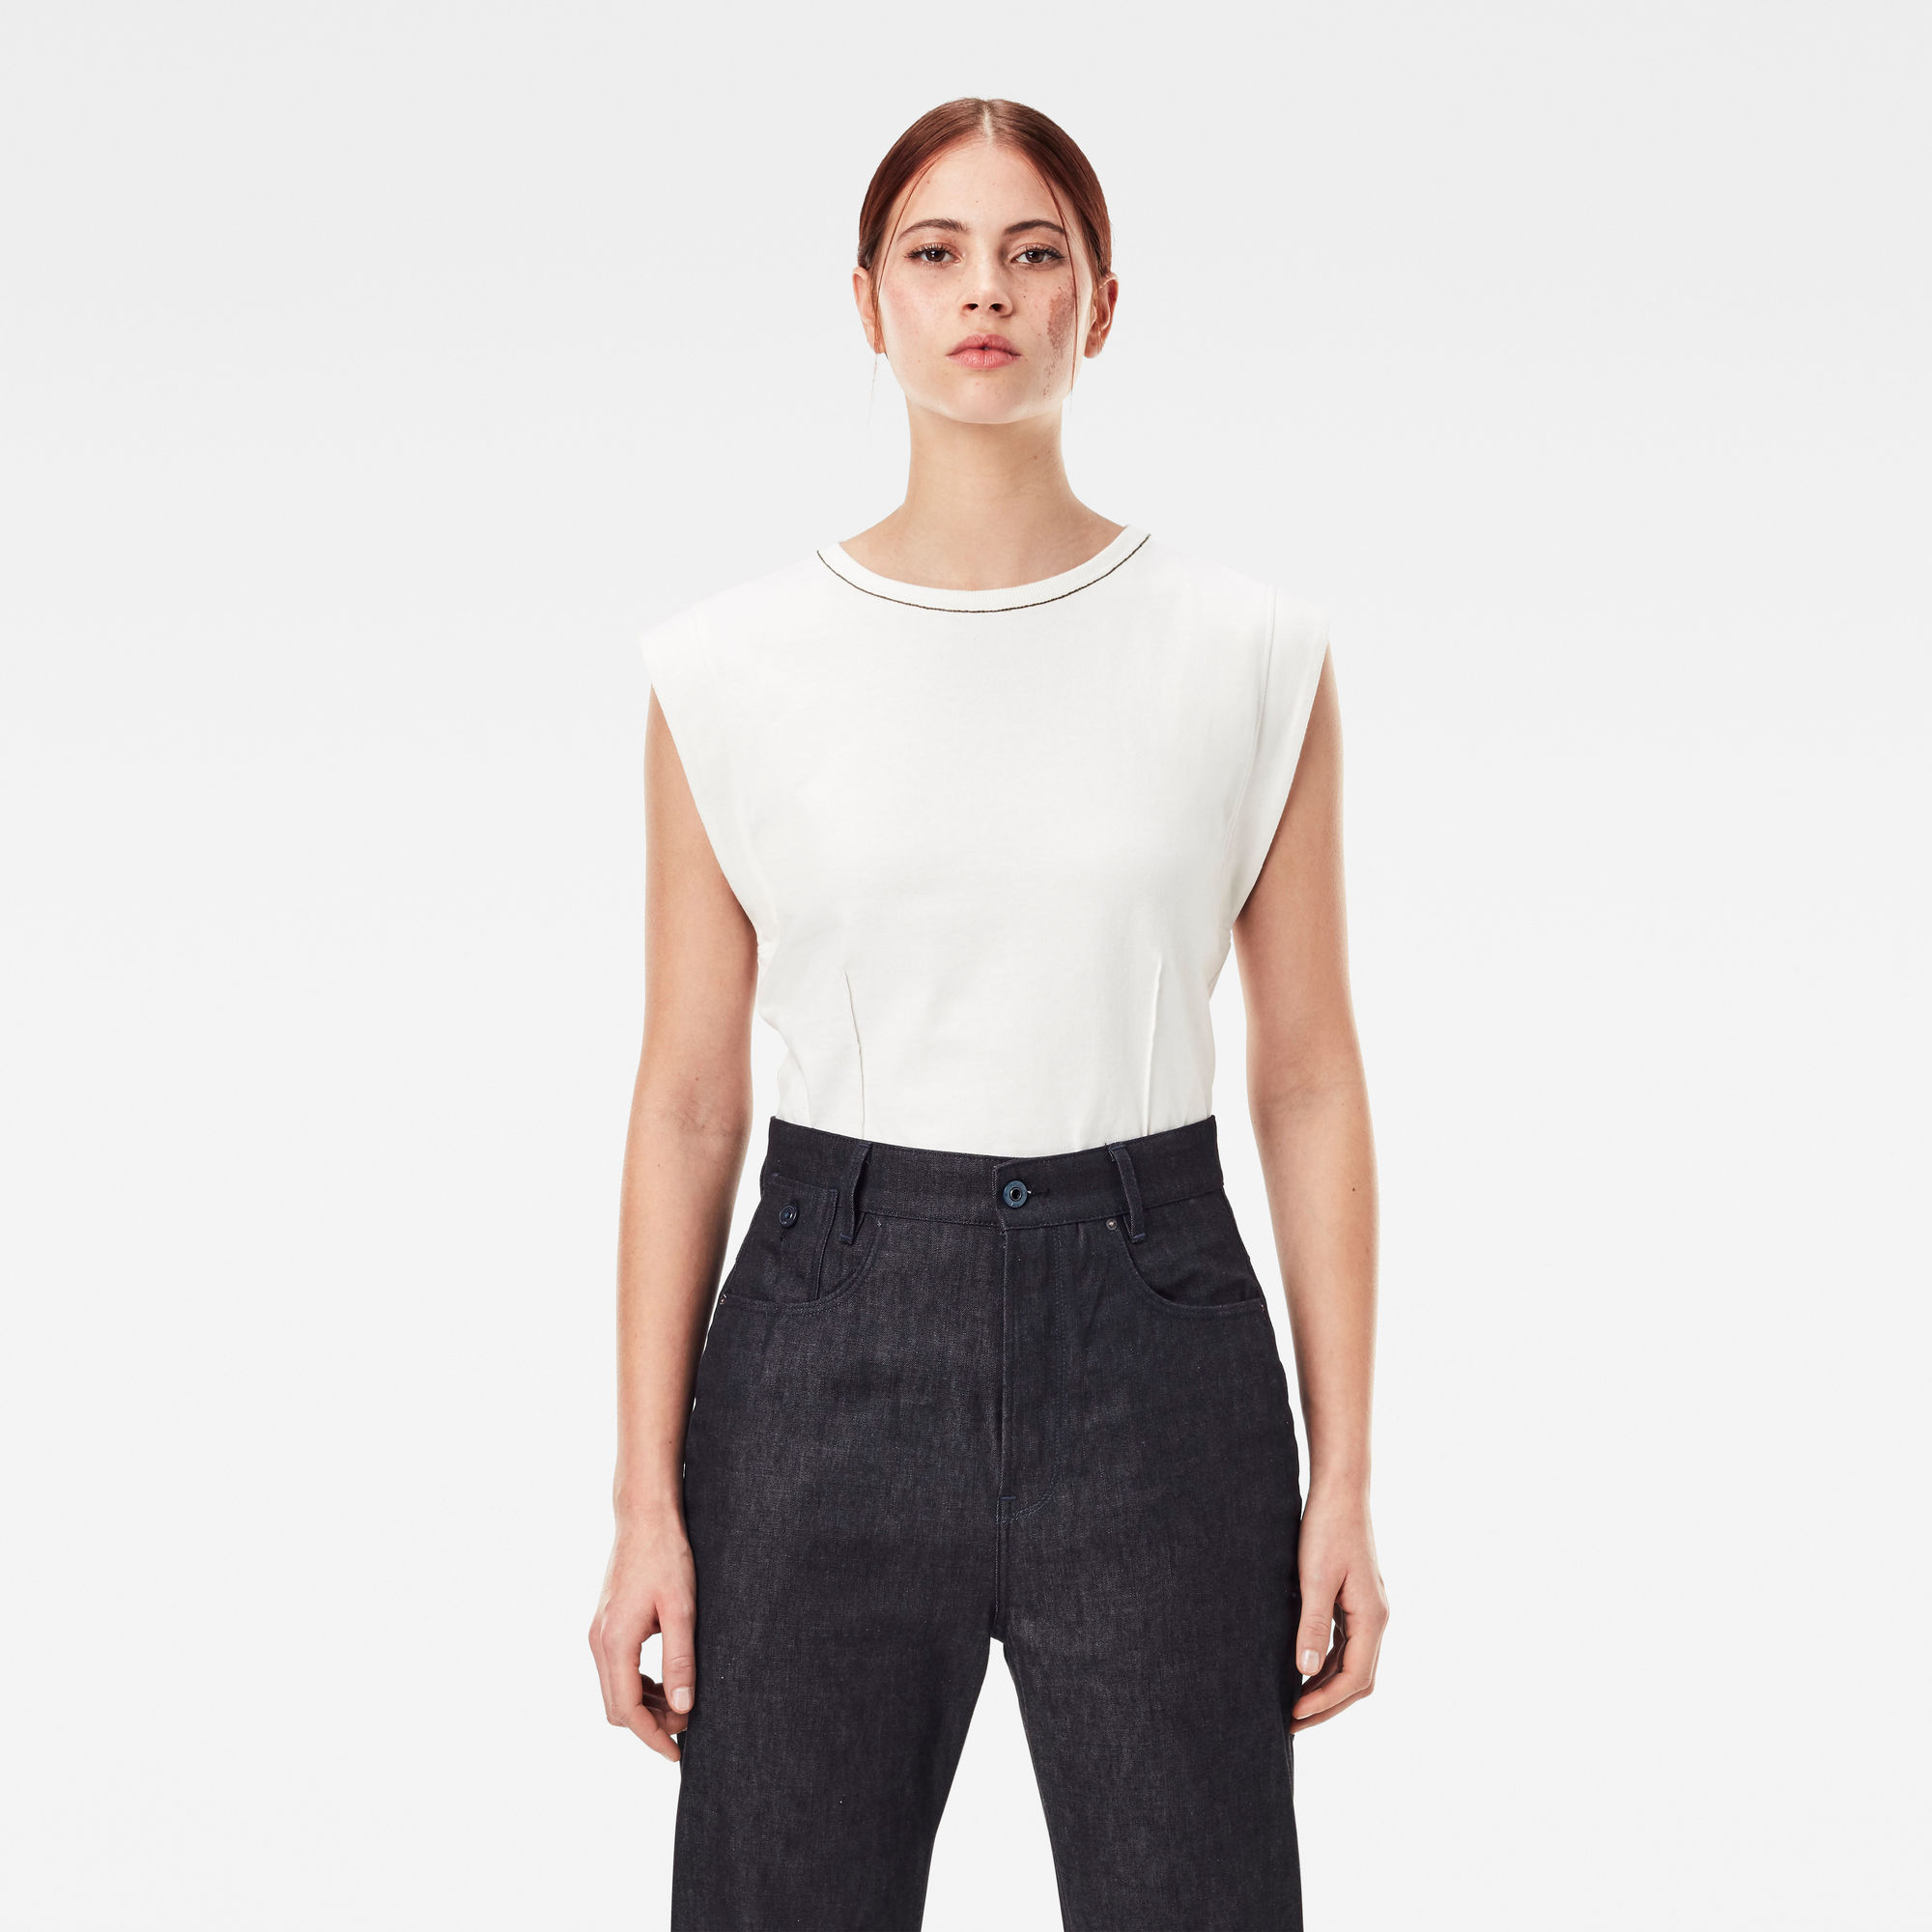 G-Star RAW Dames Waisted Top Wit